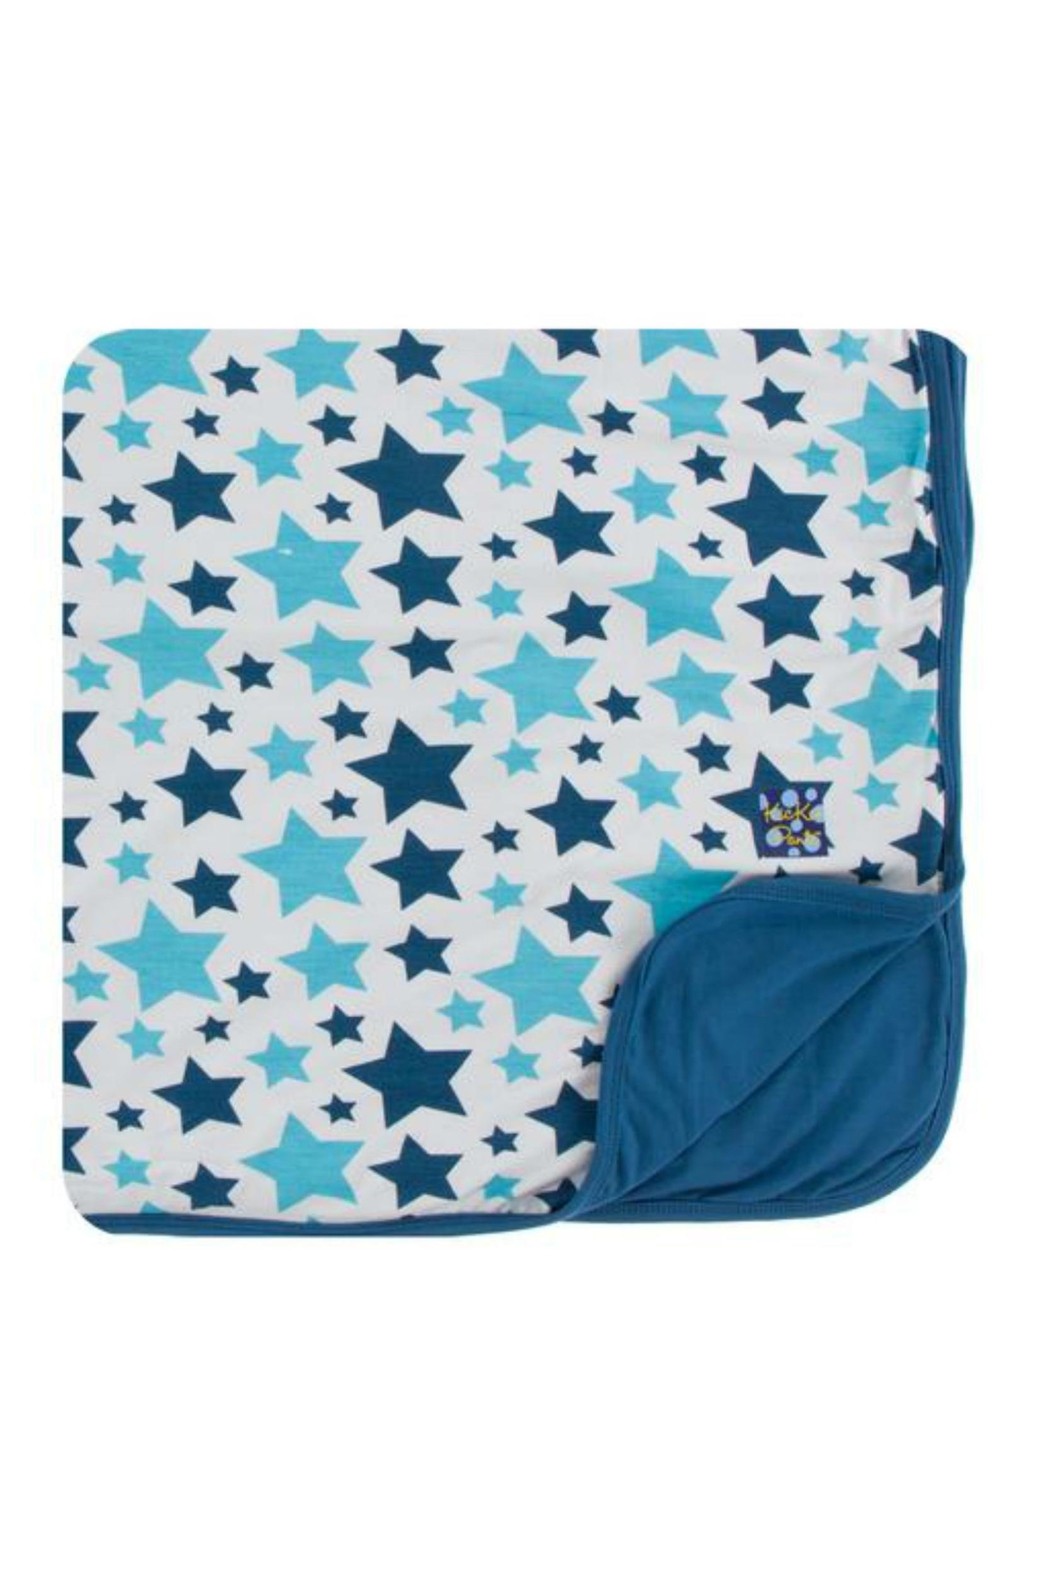 Kickee Pants Confetti Star Toddler-Blanket - Front Cropped Image